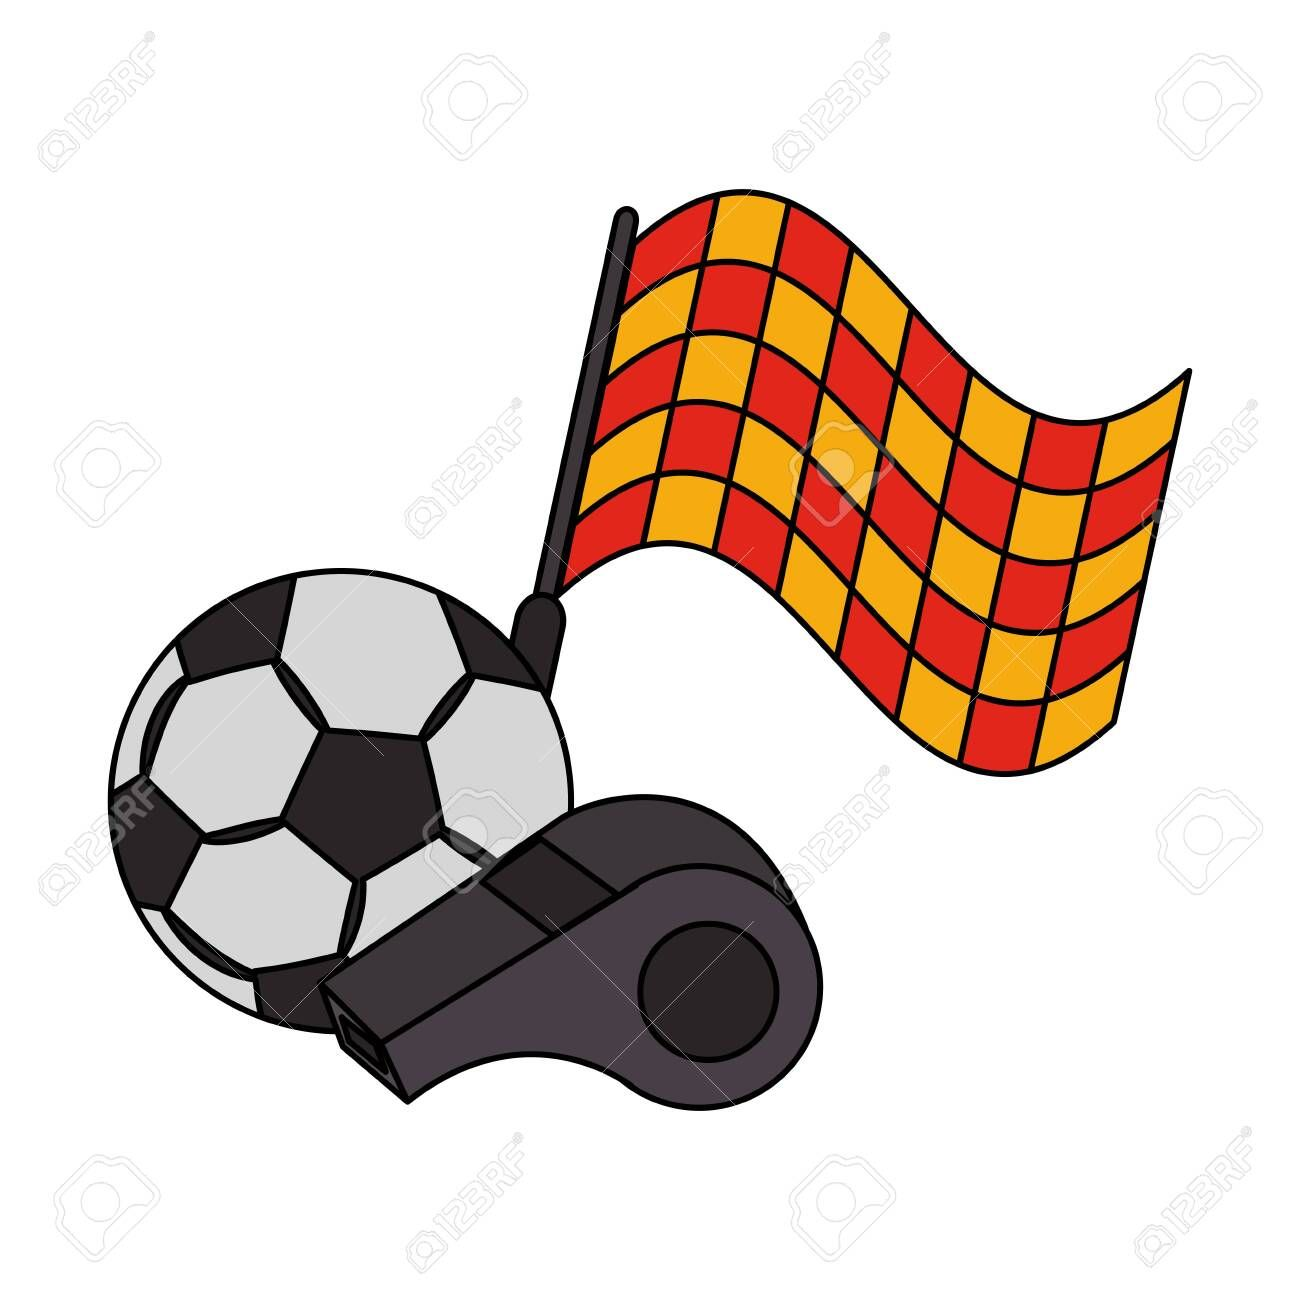 Soccer Football Sport Game Competition Play Activity Referee And Game Objects Cartoon Vector Illustration Graphic Des Competition Games Soccer Sports Games